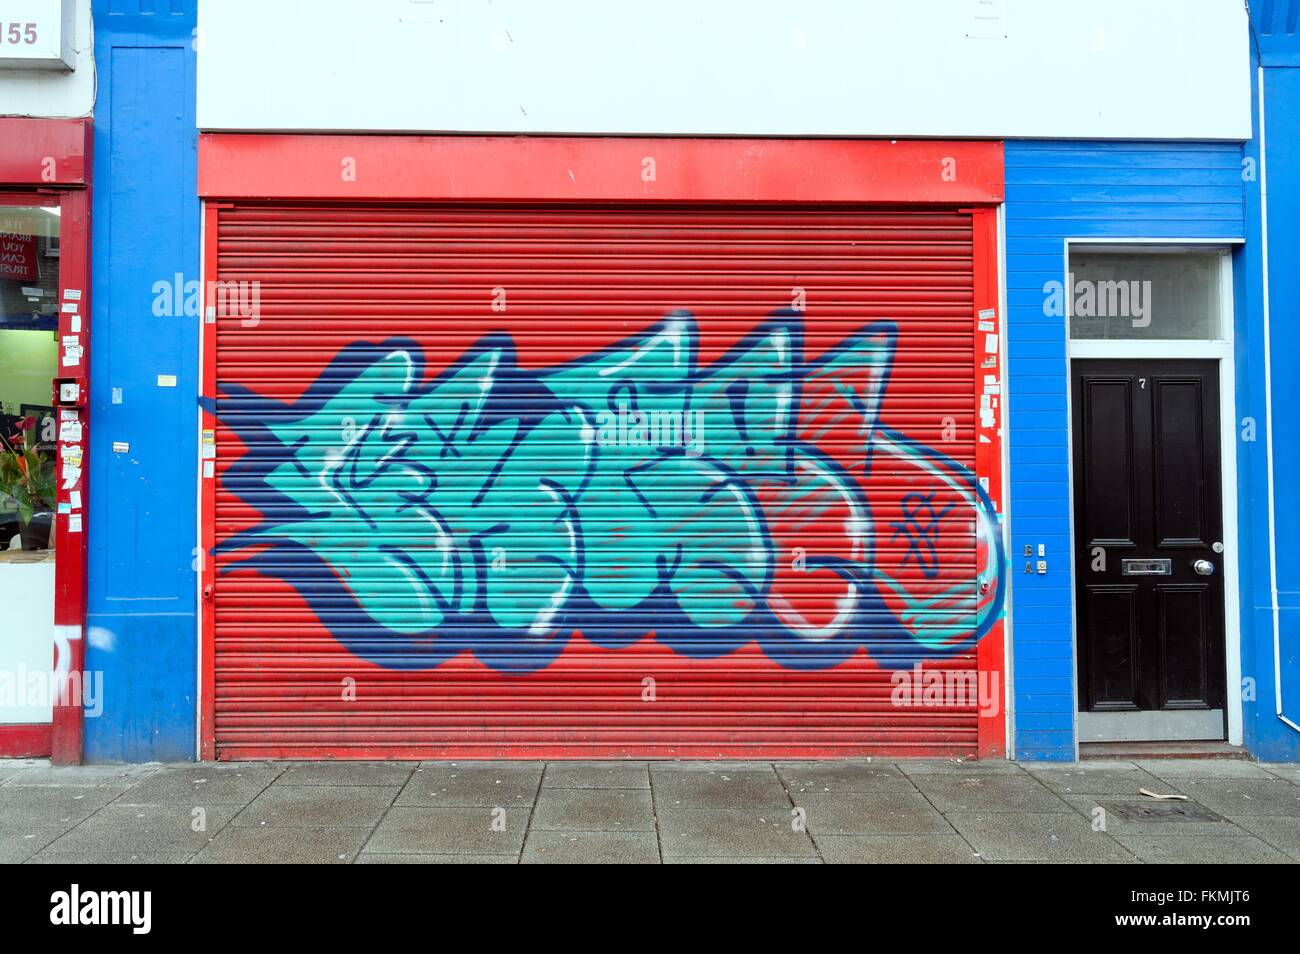 Graffiti on shuttering of a closed shop in London - Stock Image